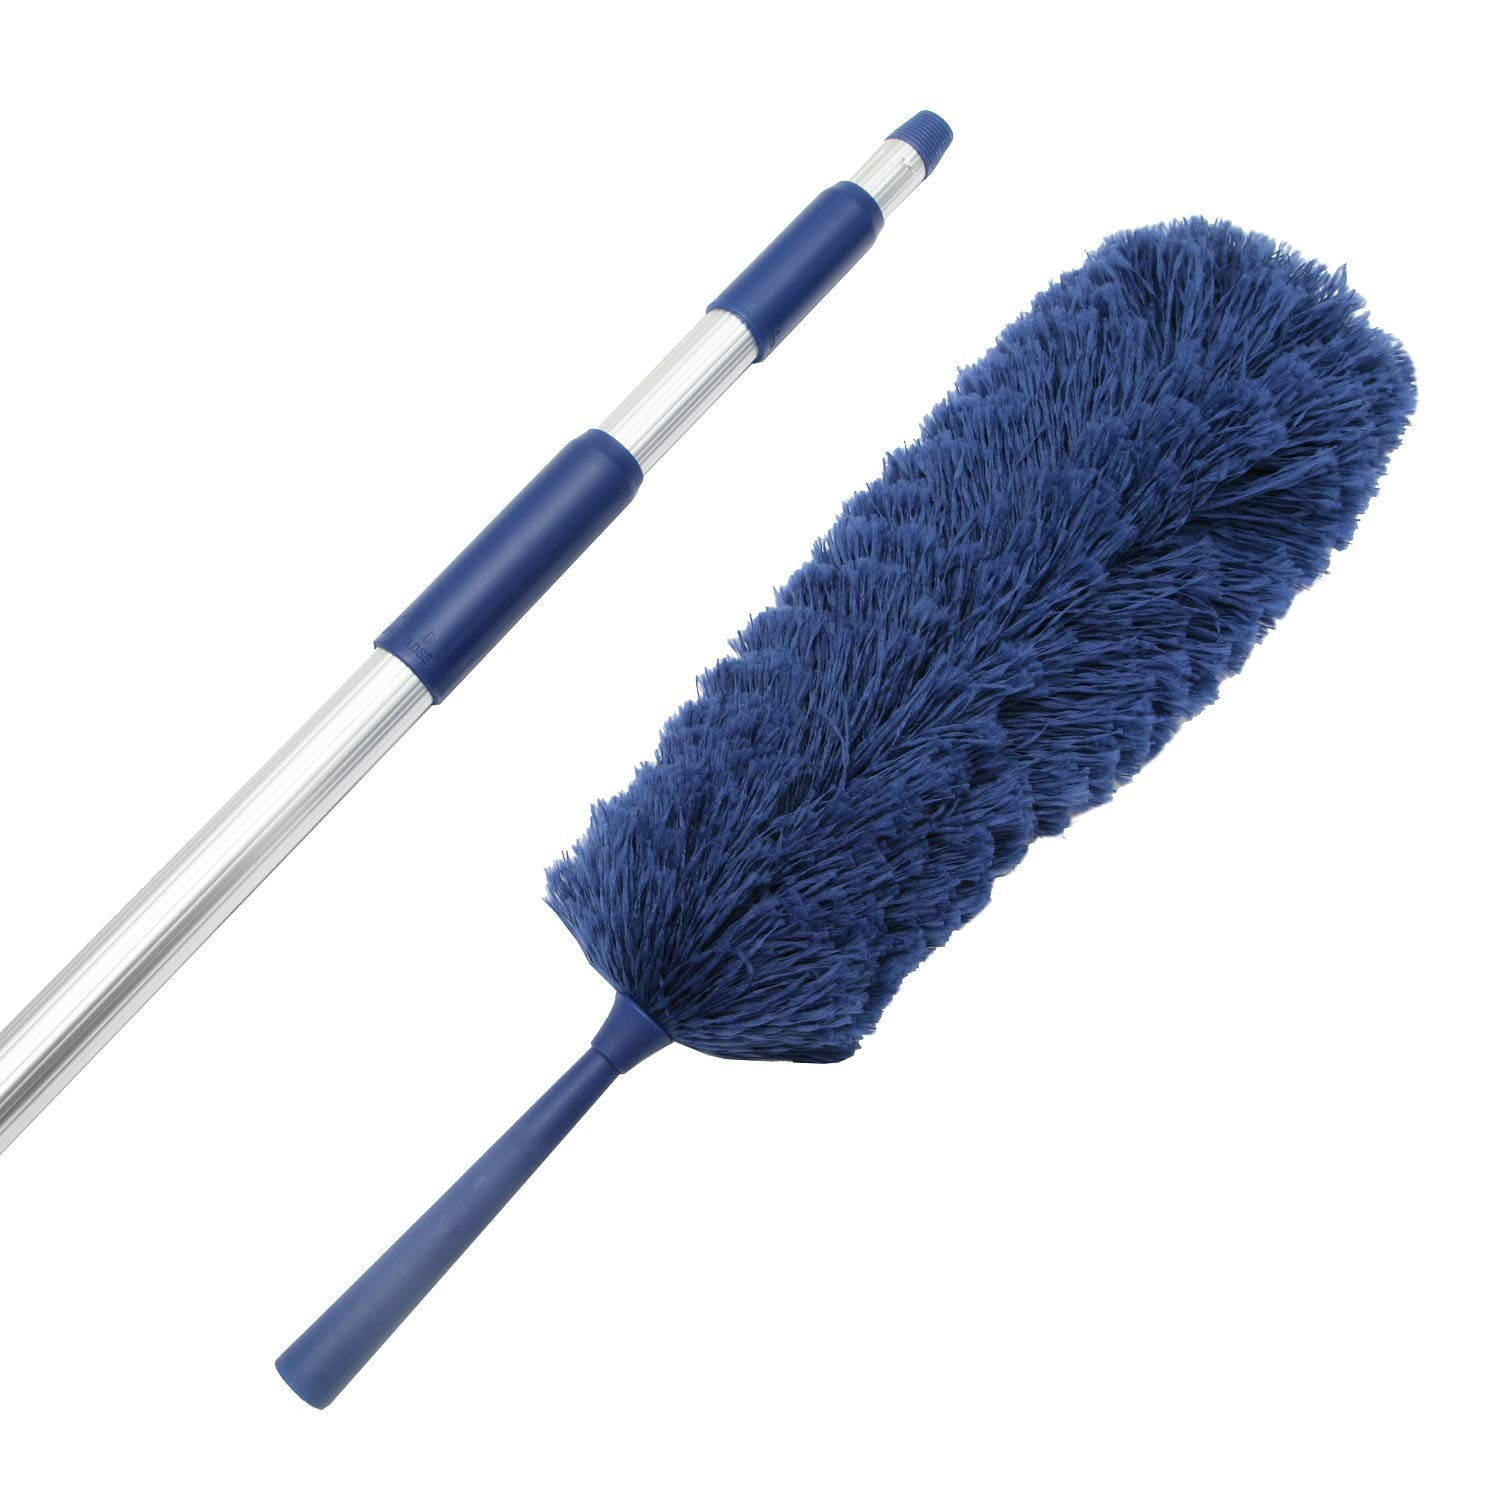 Extendable Microfiber Duster Extension Rod | Ceiling Fan Duster 20 Foot Reach | Cobweb 3-Stage Aluminum Telescoping Pole | Lightweight Webster Telescoping Cleaning Tool | U.S. Duster Co. Touch of Oranges